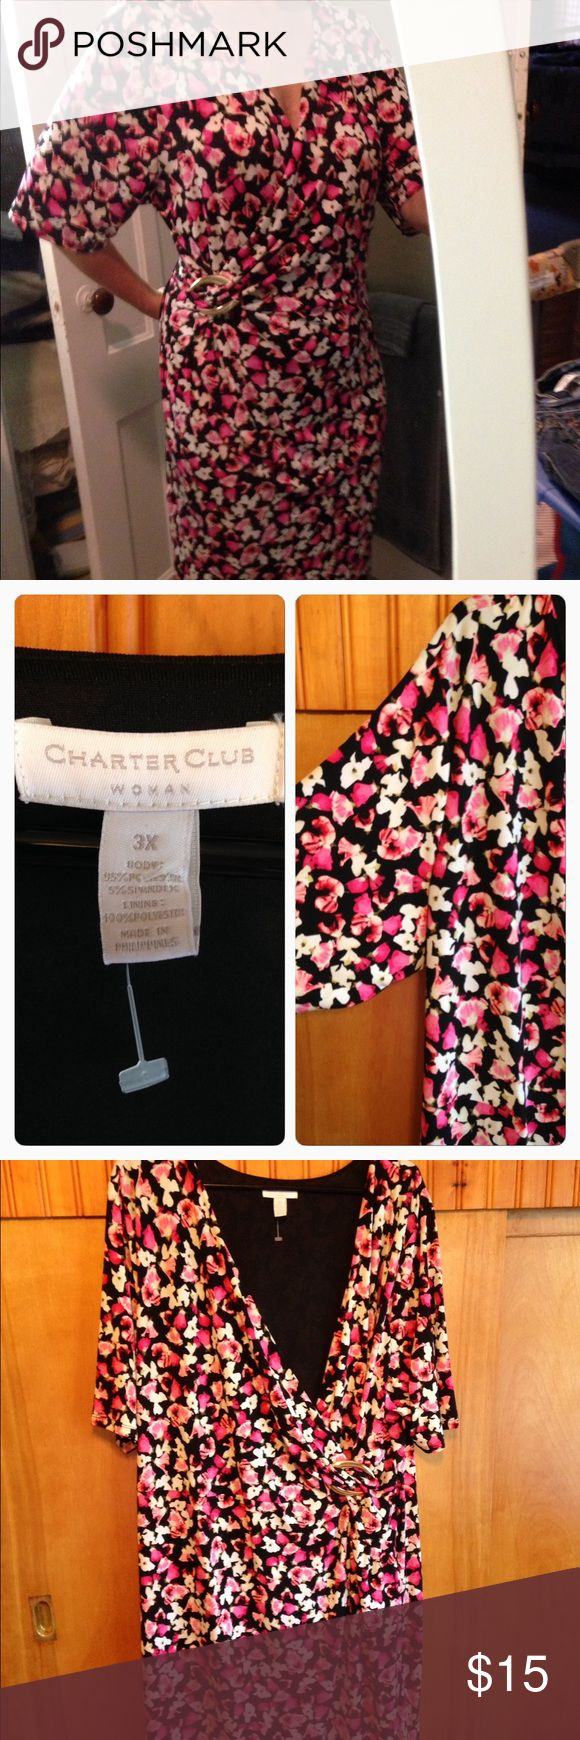 Charter Club faux wrap dress Beautiful dress for that summer wedding or class reunion 95% polyester 5% spandex for a comfortable fit. This dress is a 3X- when I took a photo I cinched it at the waist to give you a better picture. Cute gold buckle at left side of waist Charter Club Dresses